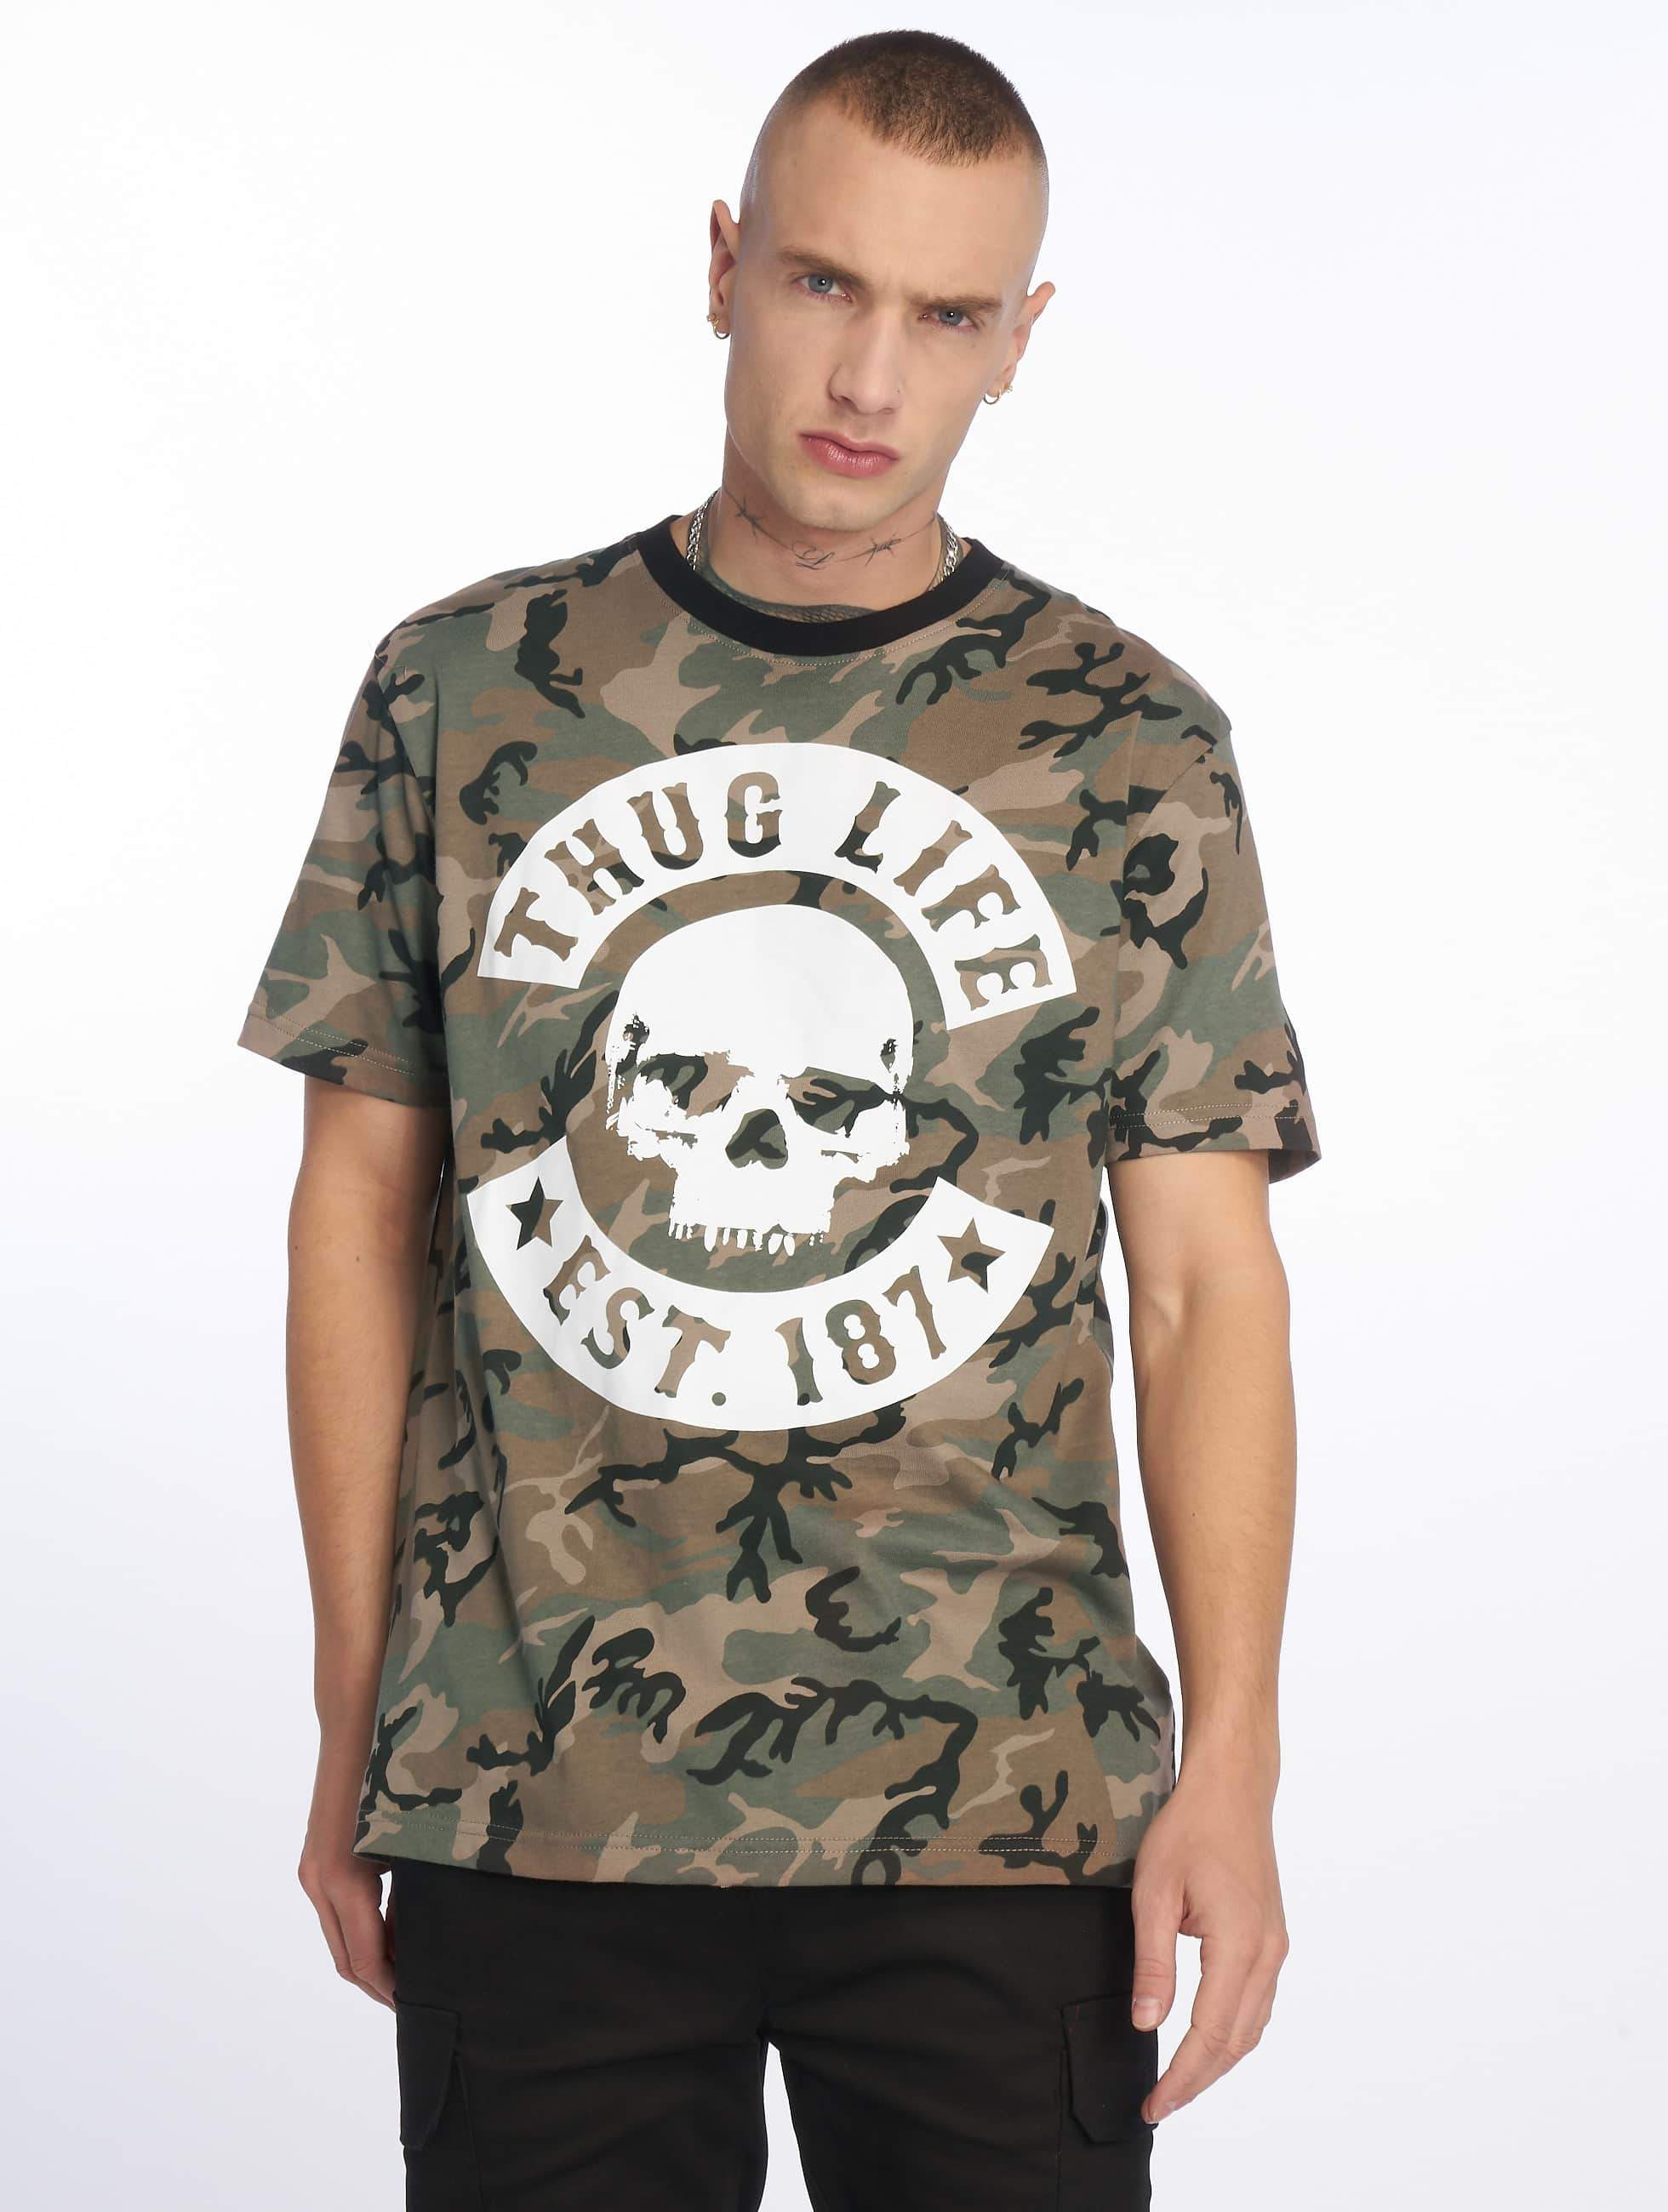 Thug Life / T-Shirt B. Camo in camouflage L